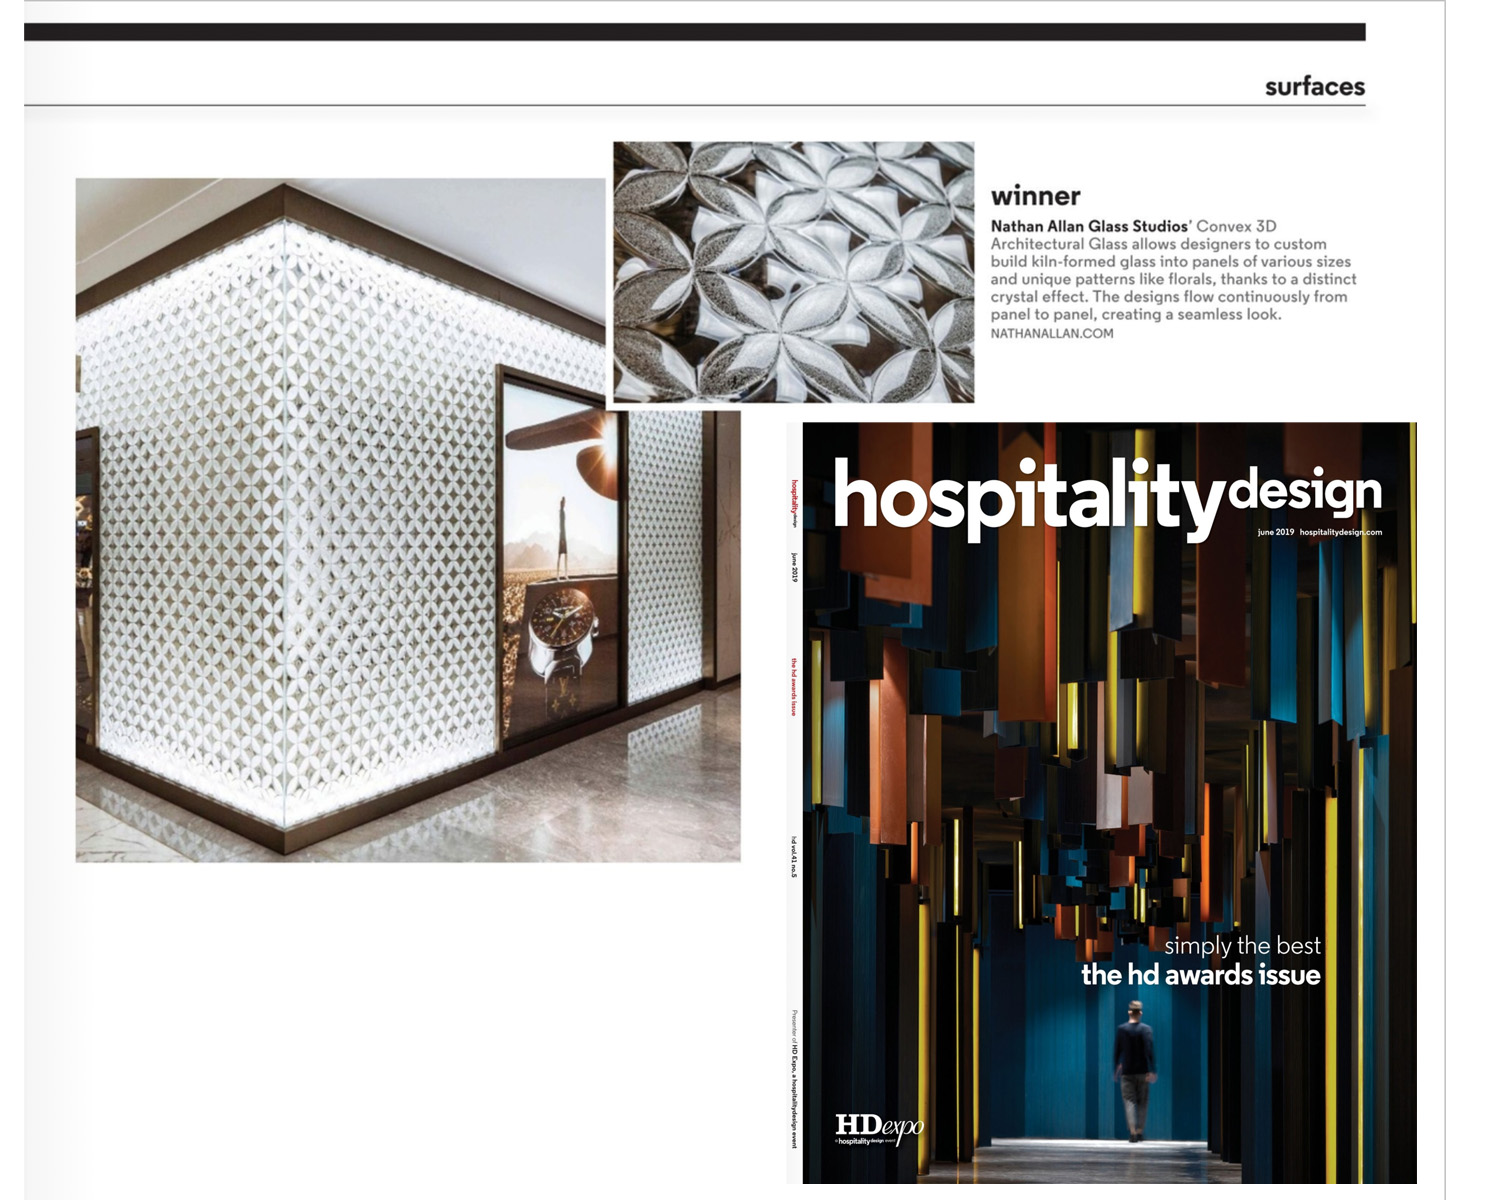 Hospitality Design | Convex 3D Architectural Glass